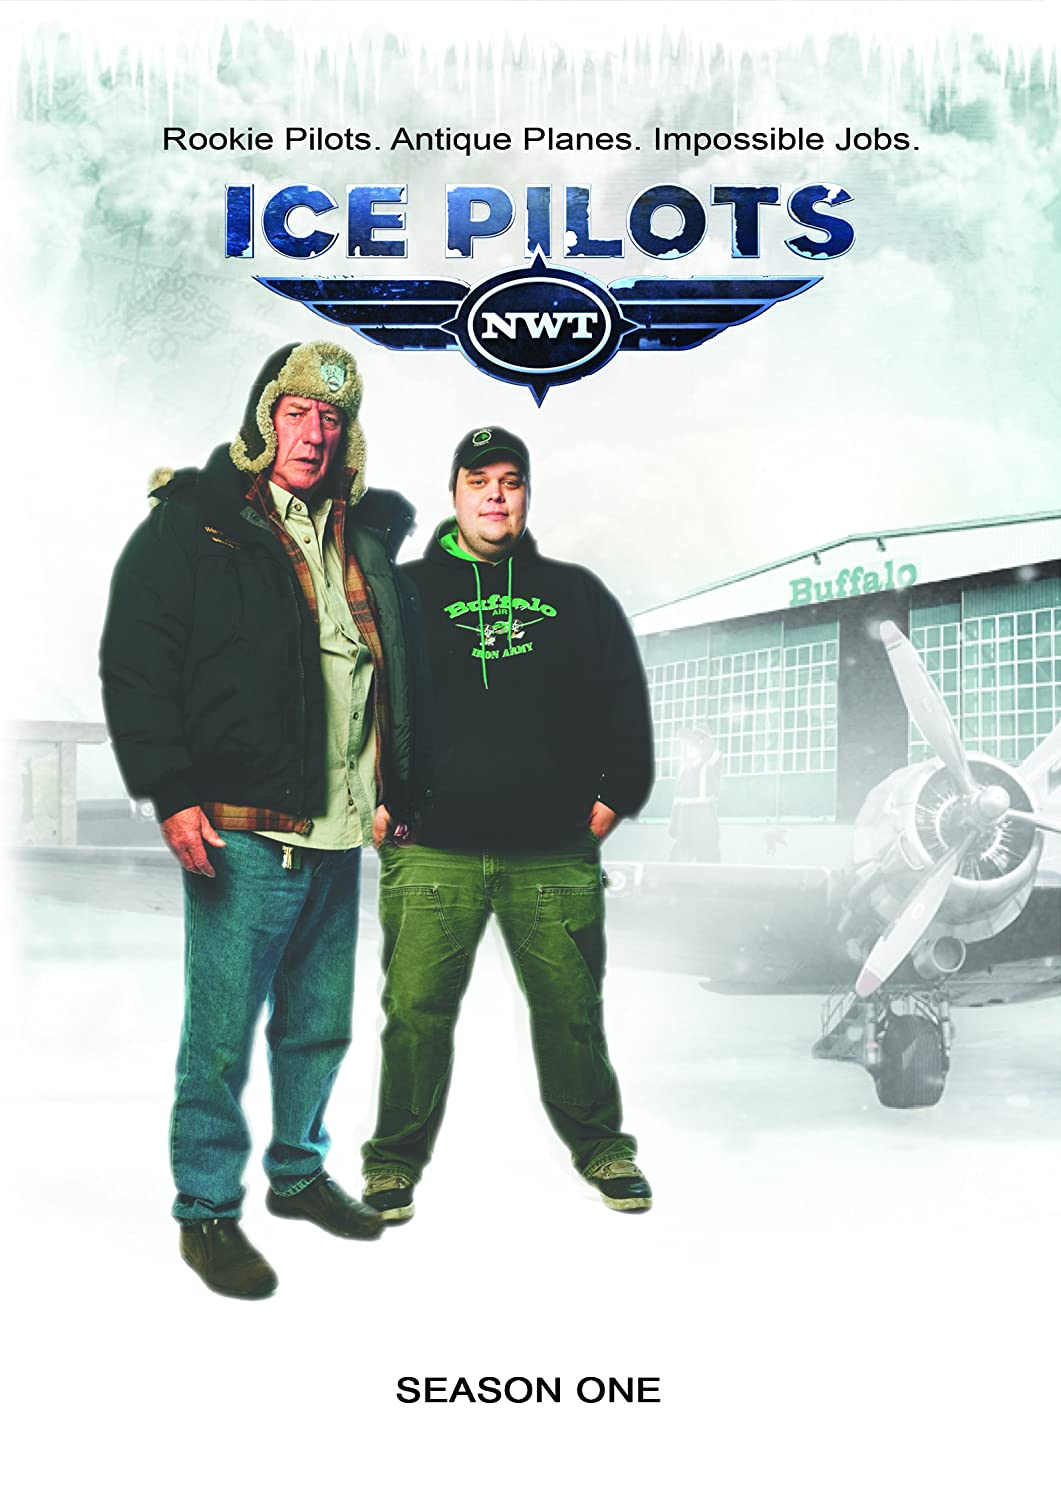 Ice Pilots NWT - 3-Disc Set Discount mail Inexpensive order Season 1